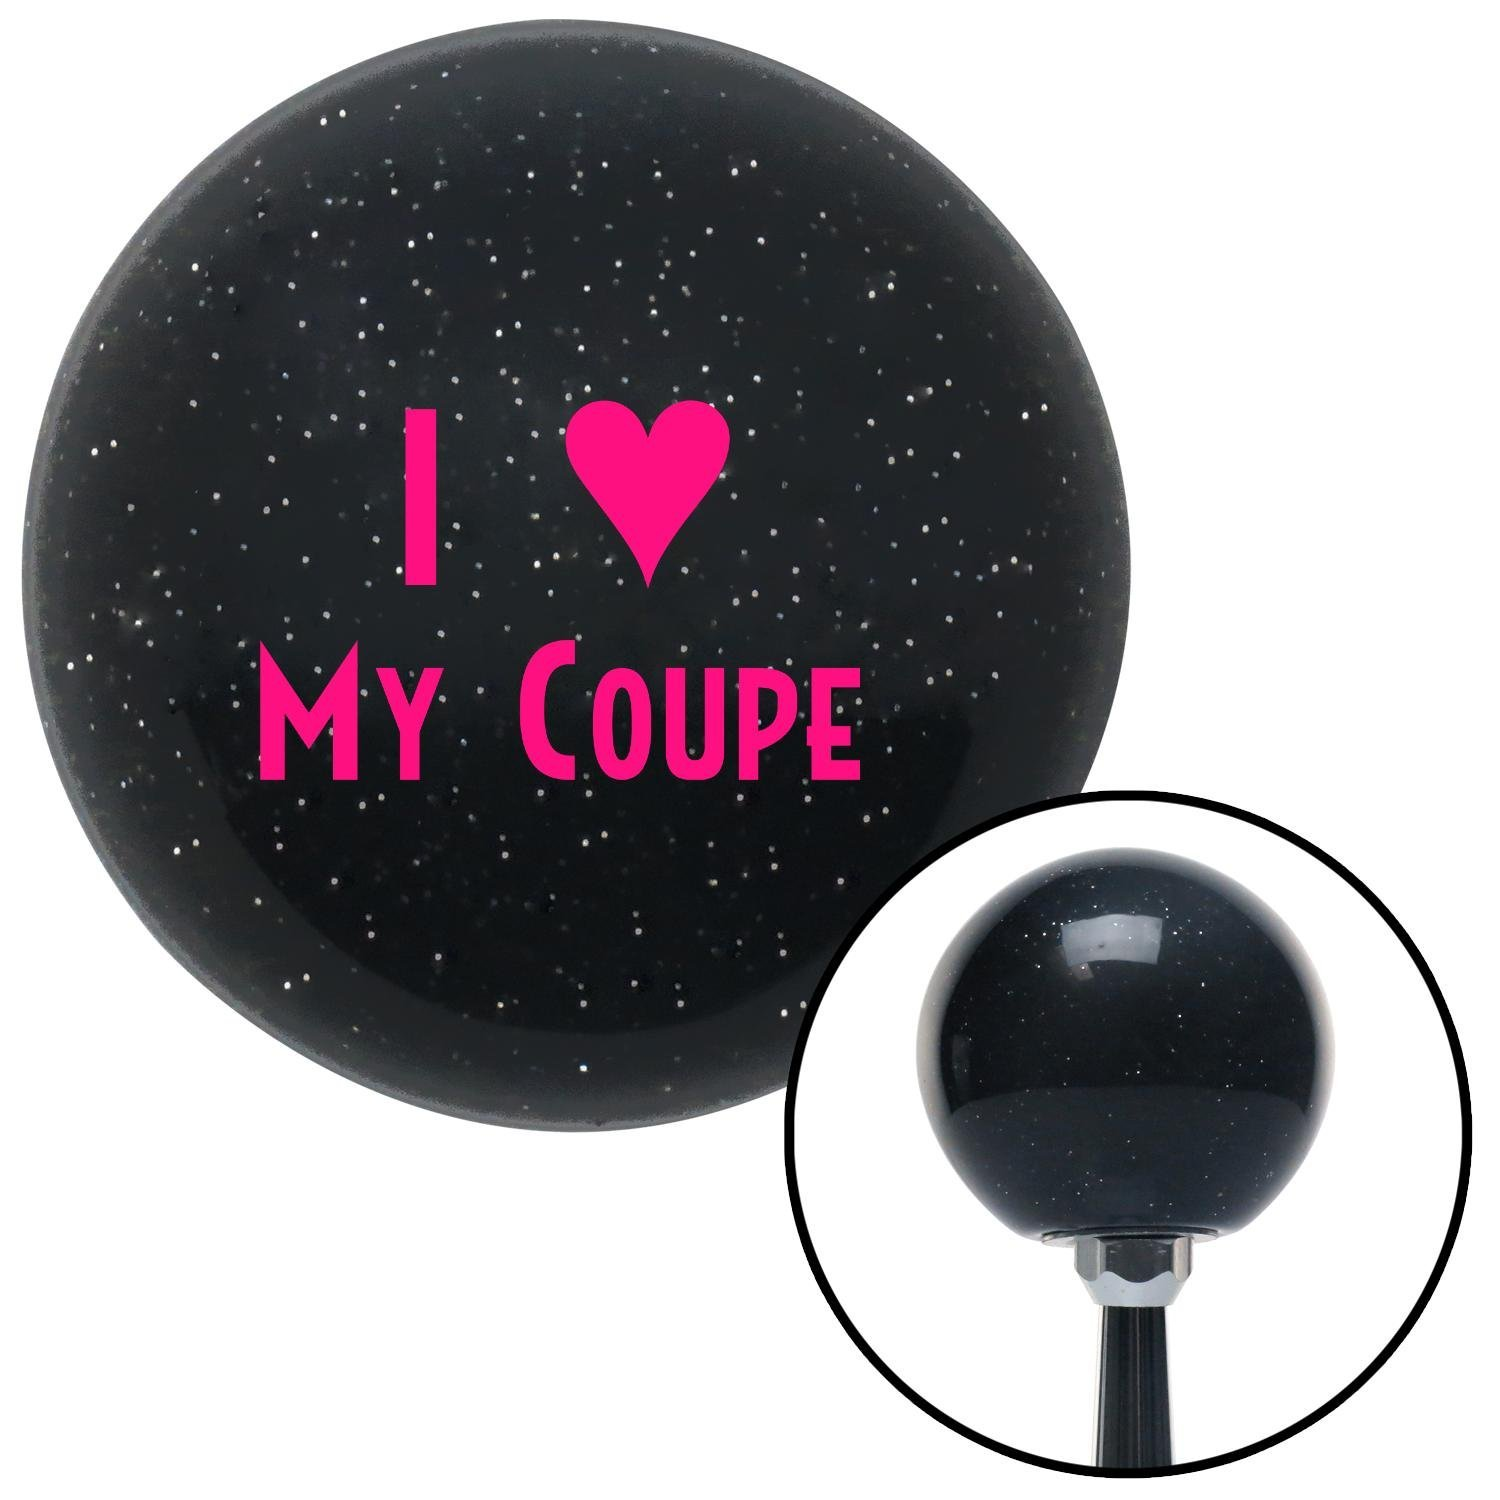 American Shifter 71560 Black Metal Flake Shift Knob with M16 x 1.5 Insert Pink I 3 My Coupe